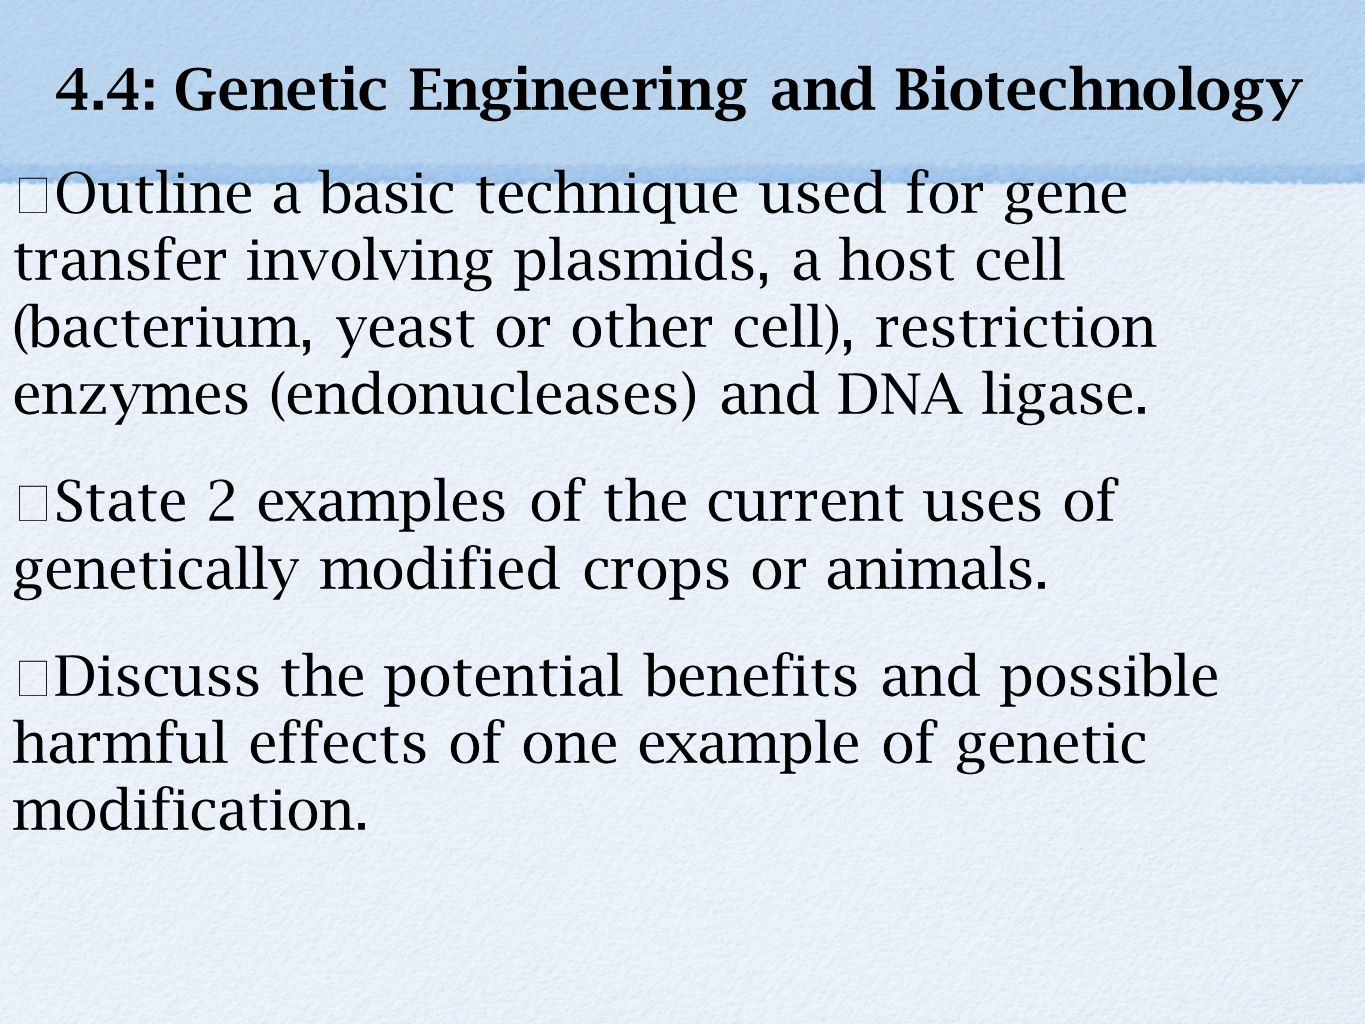 the effects of genetic engineering essay